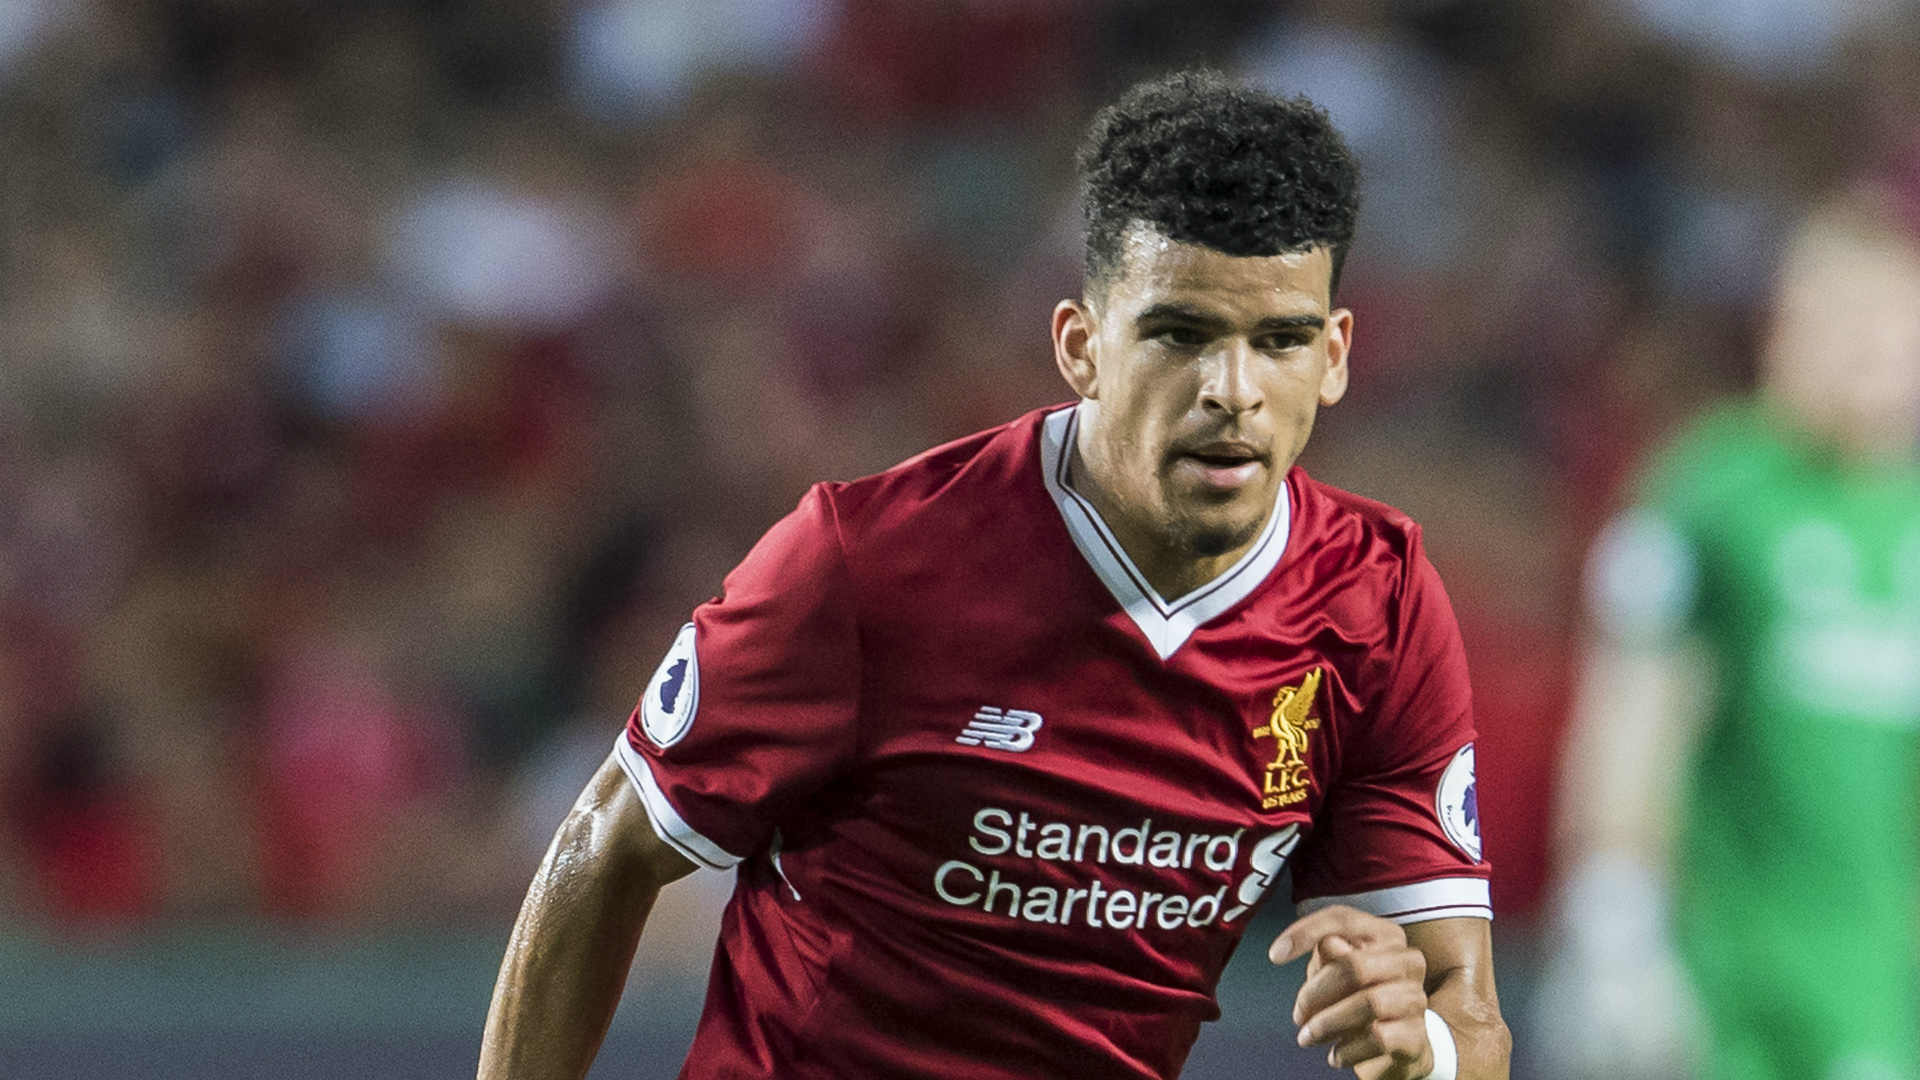 Salah could be the signing of the season, says Liverpool's Moreno